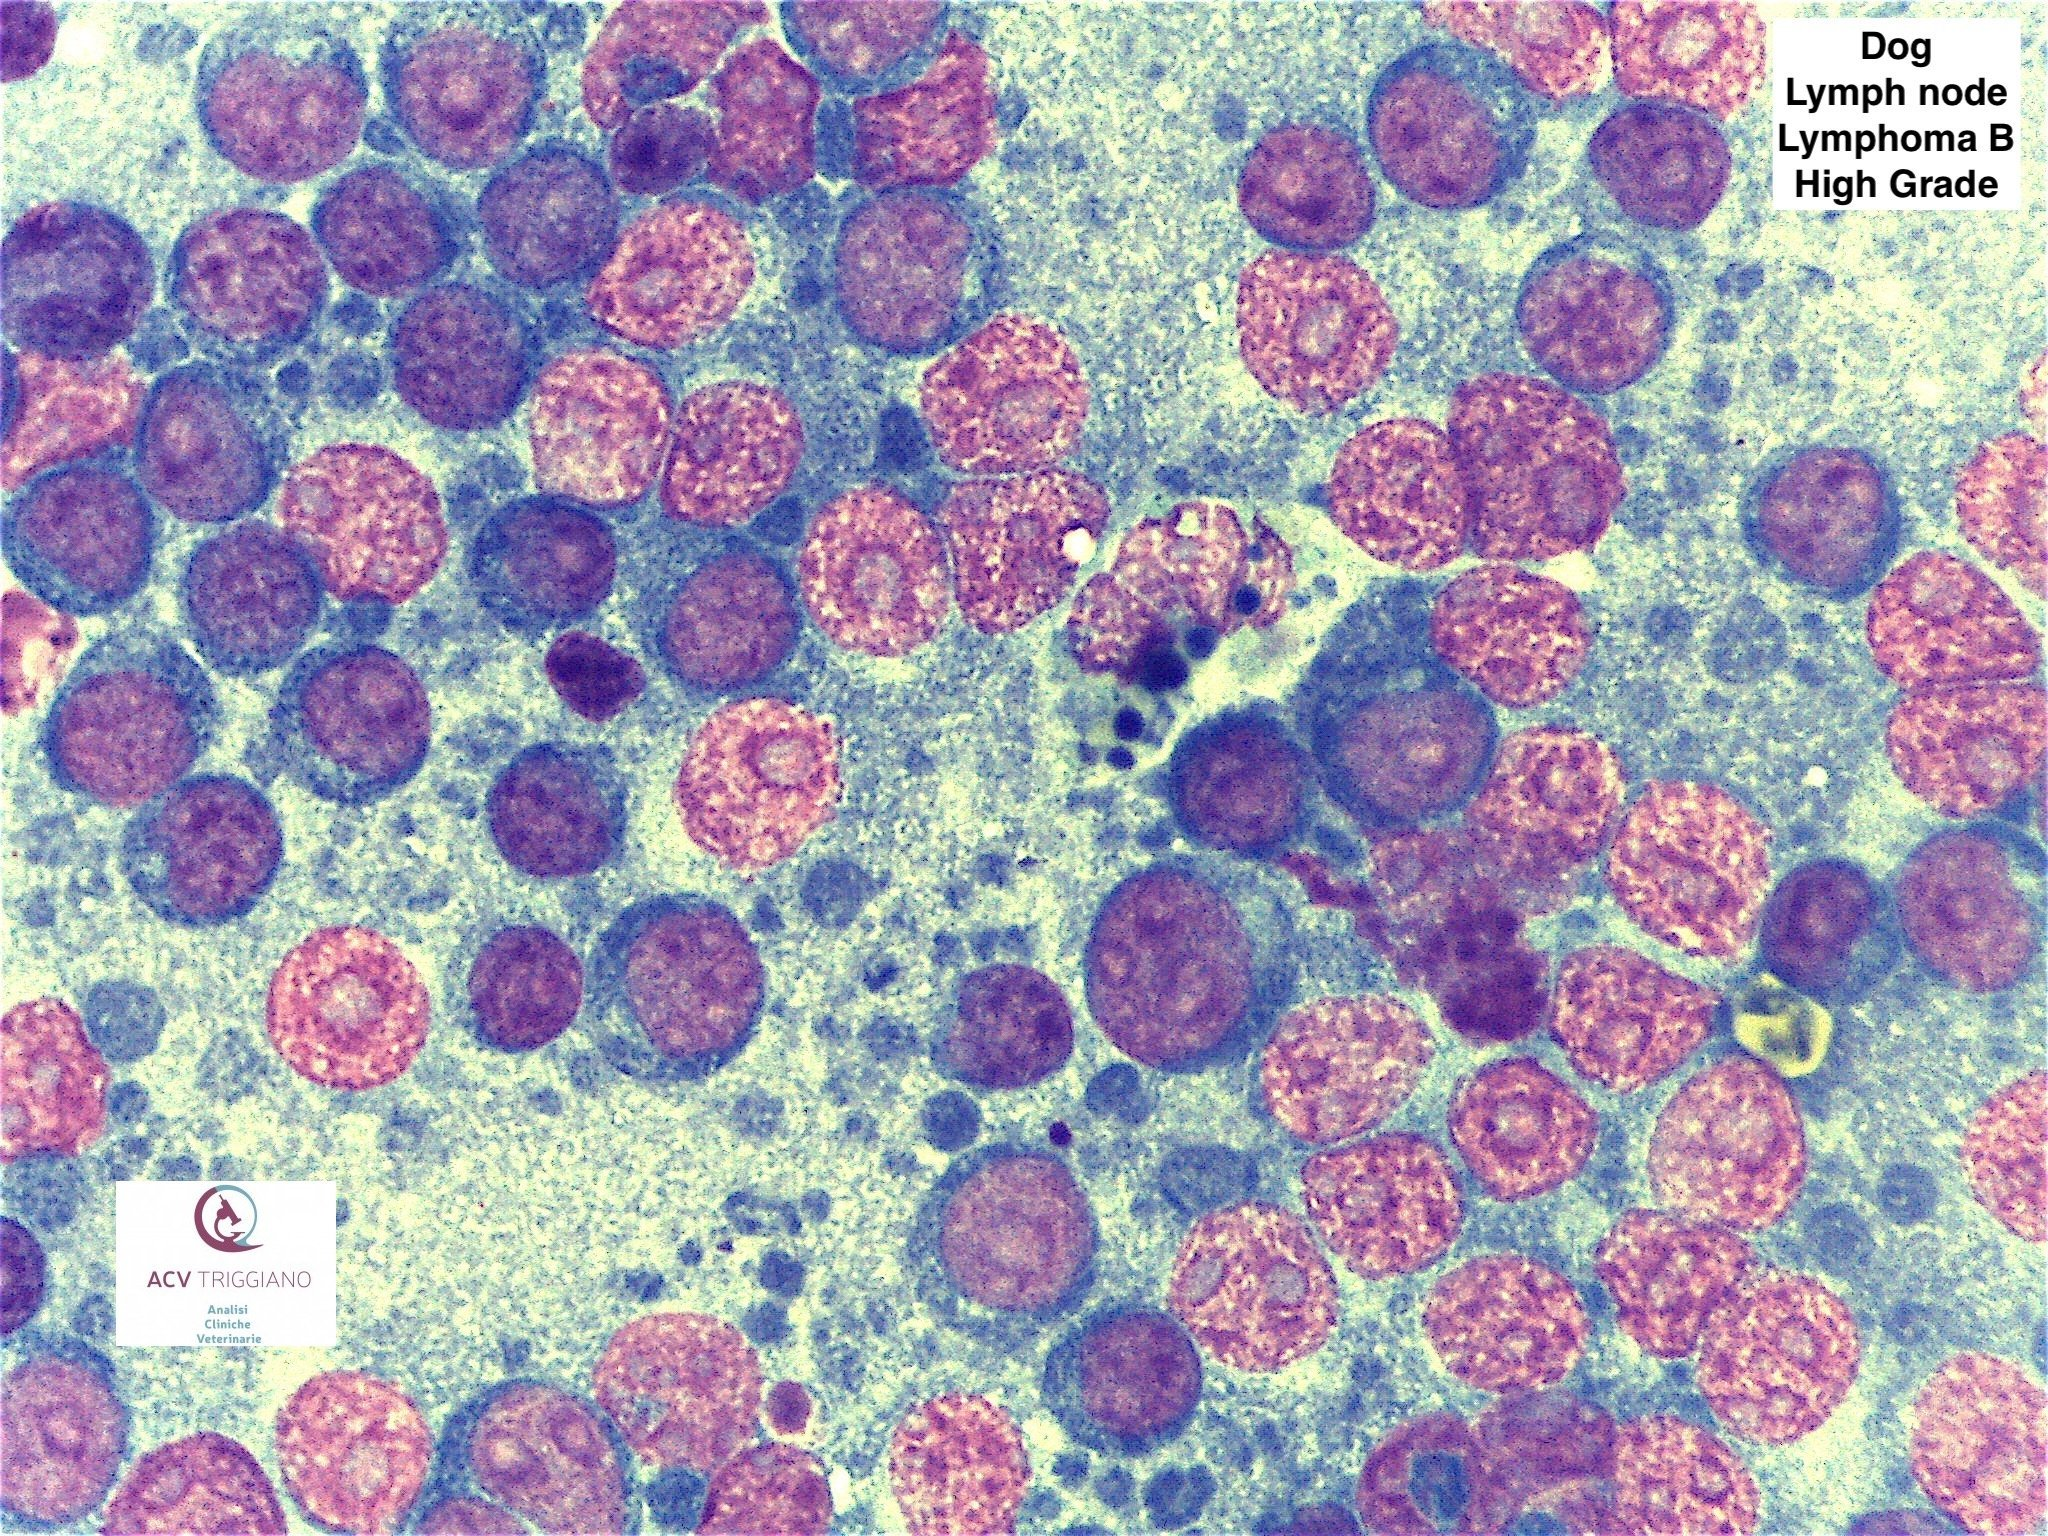 High grade large B cell lymphoma (DLBCL), lymph node, dog.